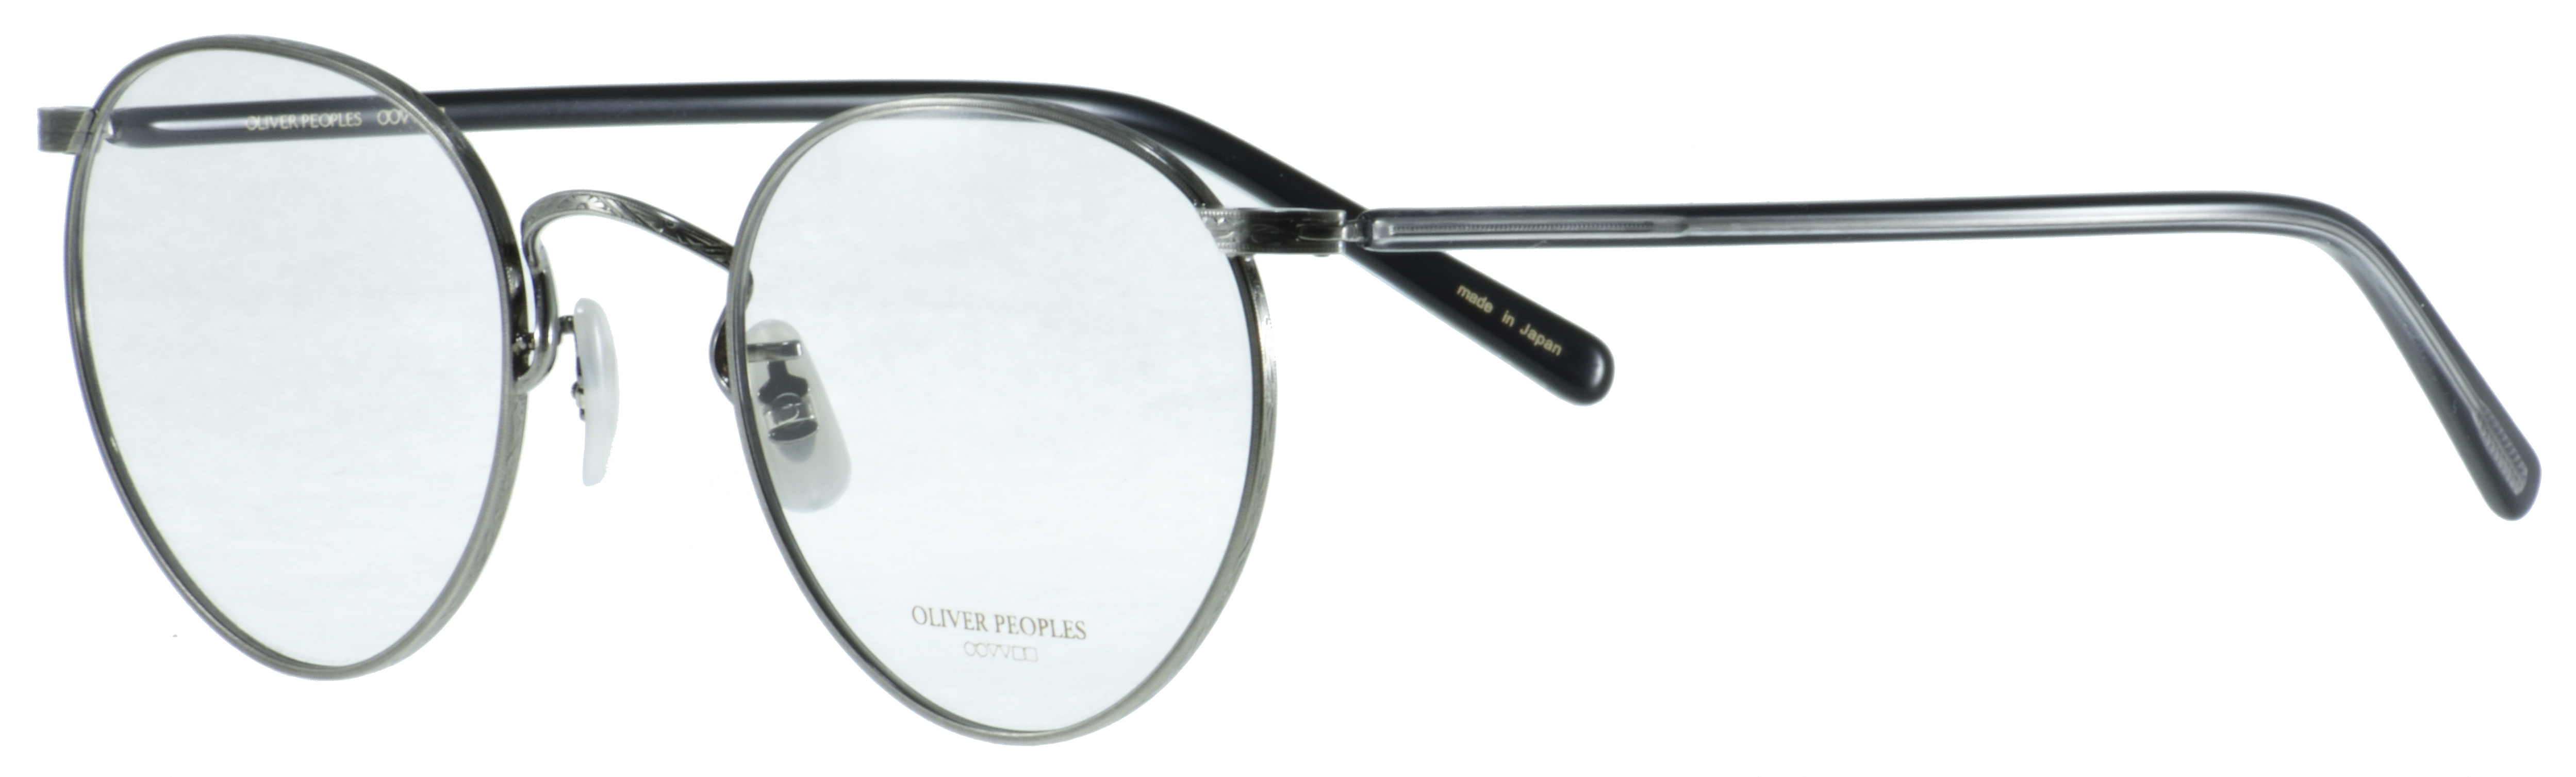 OLIVER PEOPLES OP-78 P